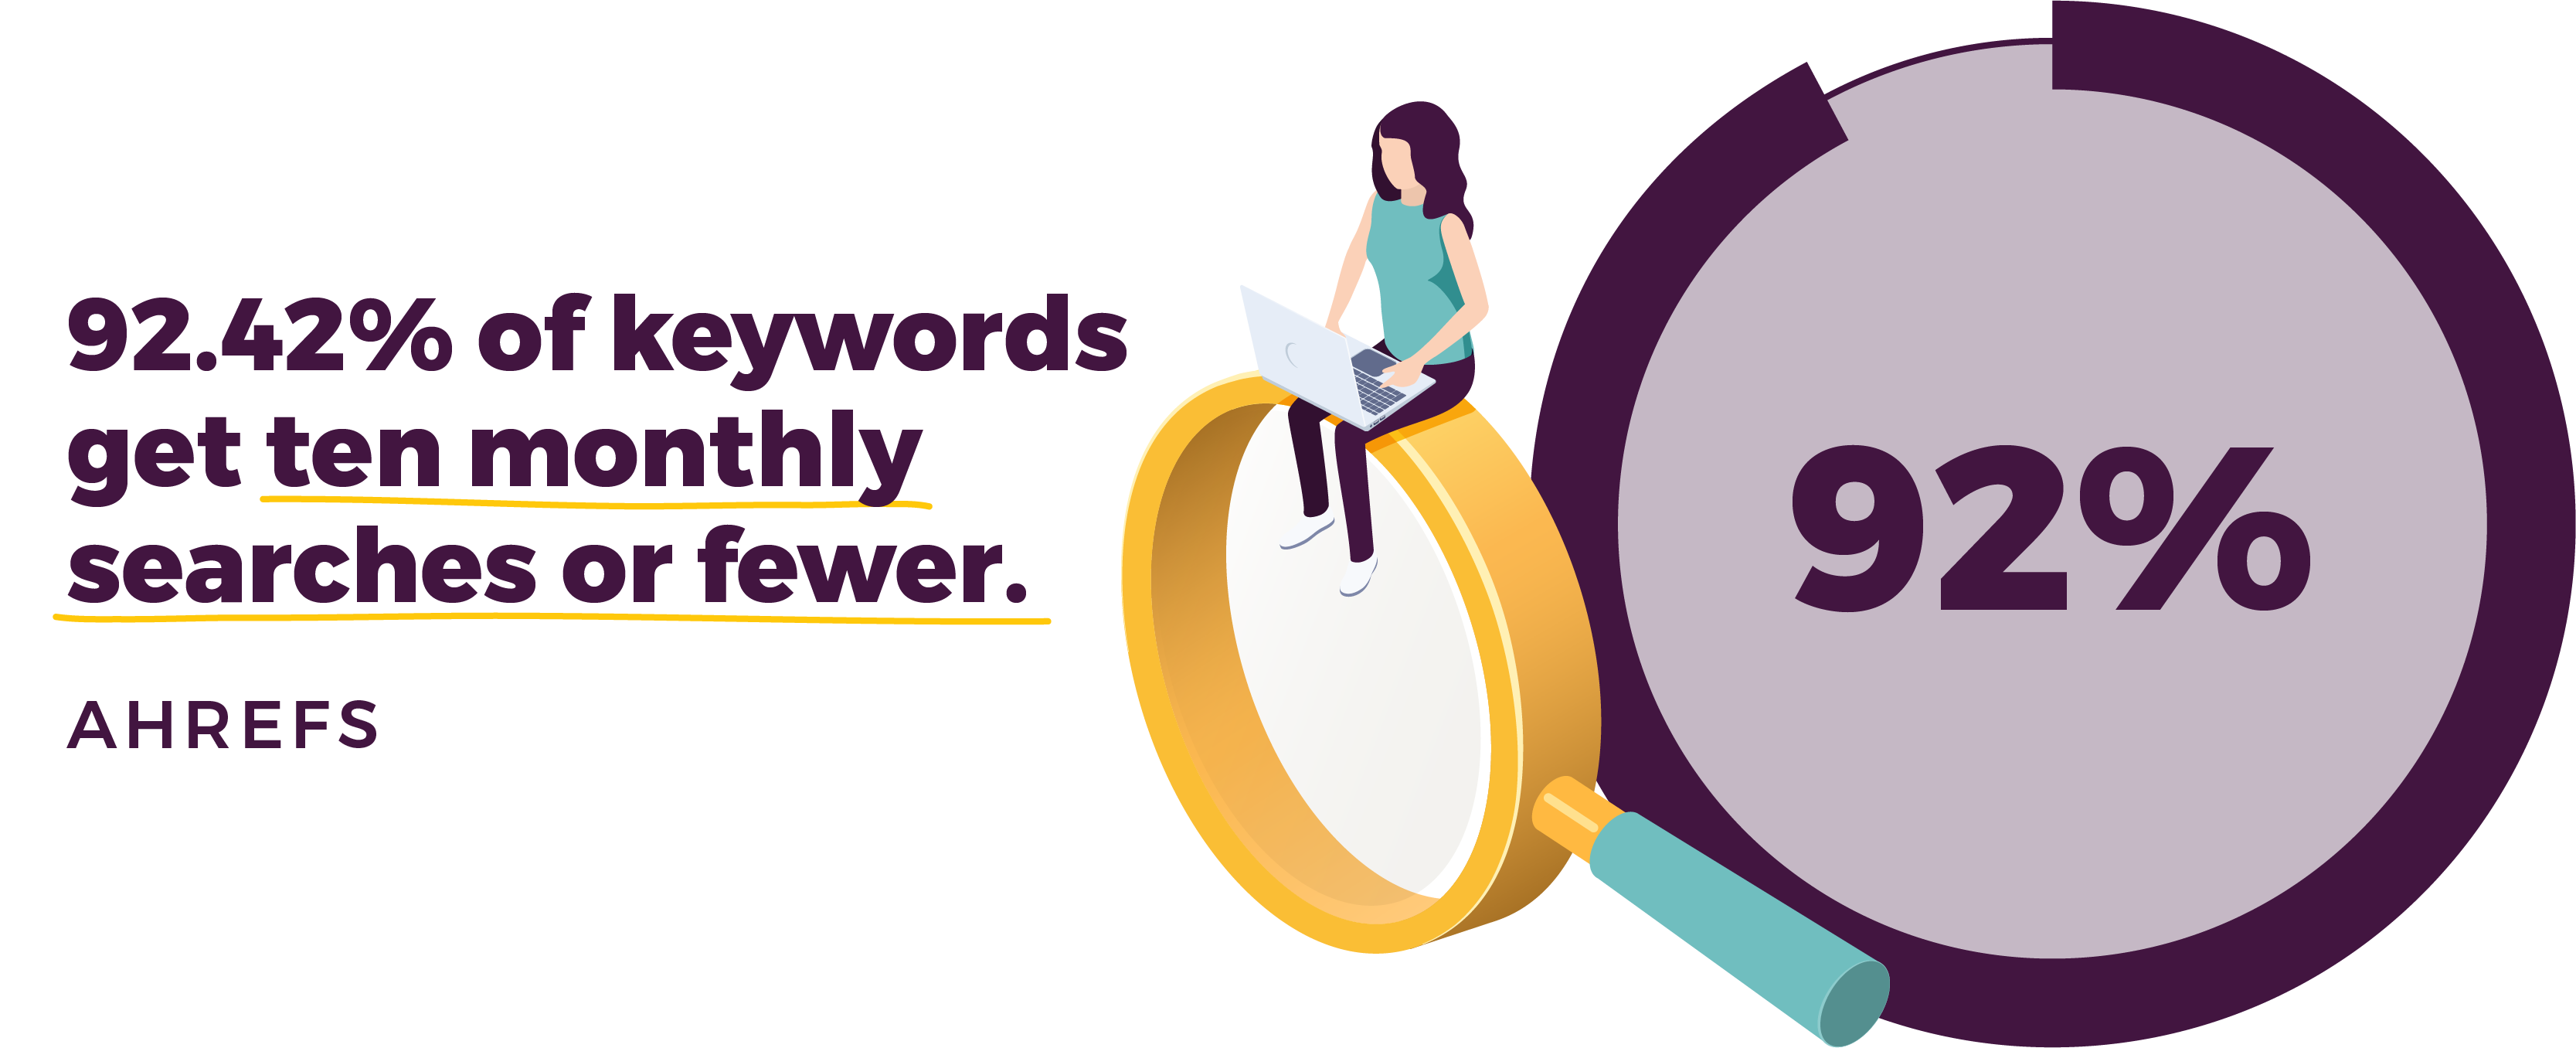 92.42% of keywords get ten monthly searches or fewer